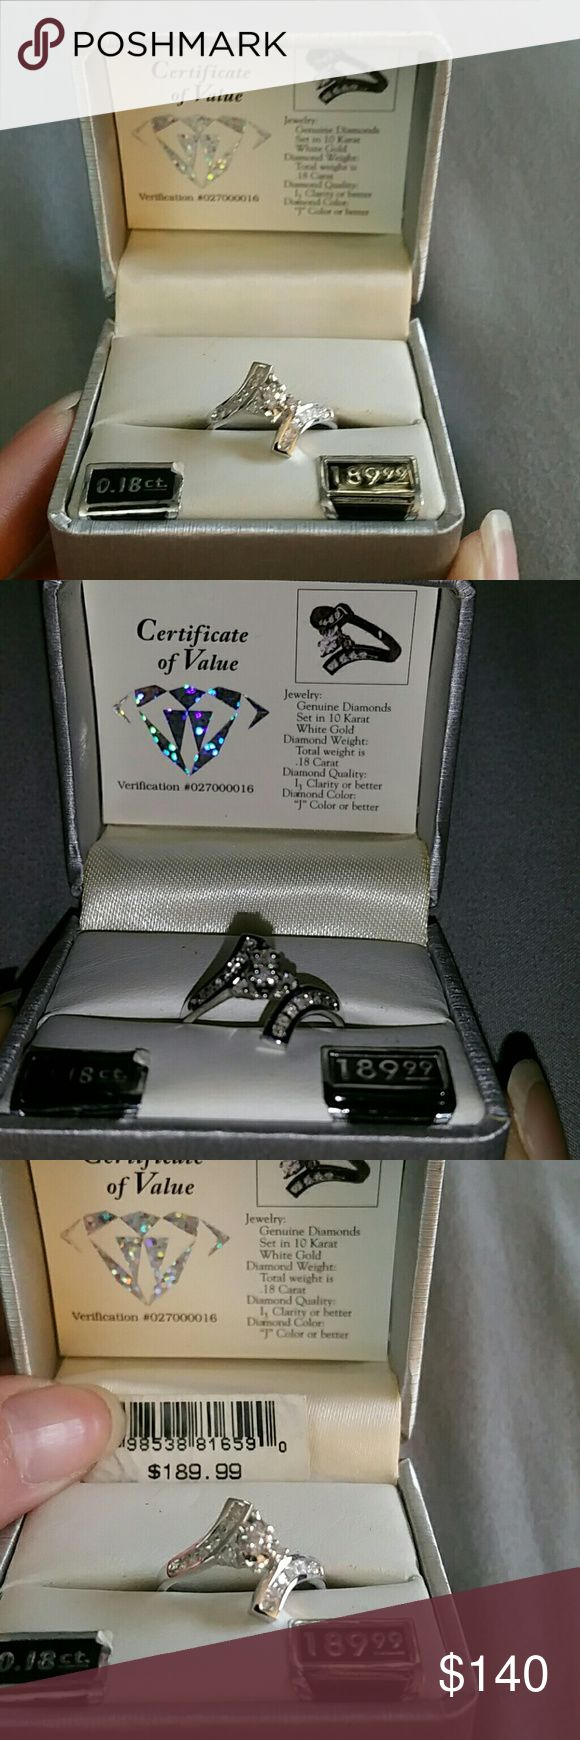 LOW PRICE FOR BLACK FRIDAY10 karat white Gold Ring SALE ONLY TODAY!!!!!! BLACK FRIDAY!!!!Beautiful Genuine diamonds set in 10 Karat White Gold.  See pics for additional info.  This ring was bought years ago brand new but never worn.  I believe its a size 7, that is my ring size and it fits my ring finger perfect. Jewelry Rings